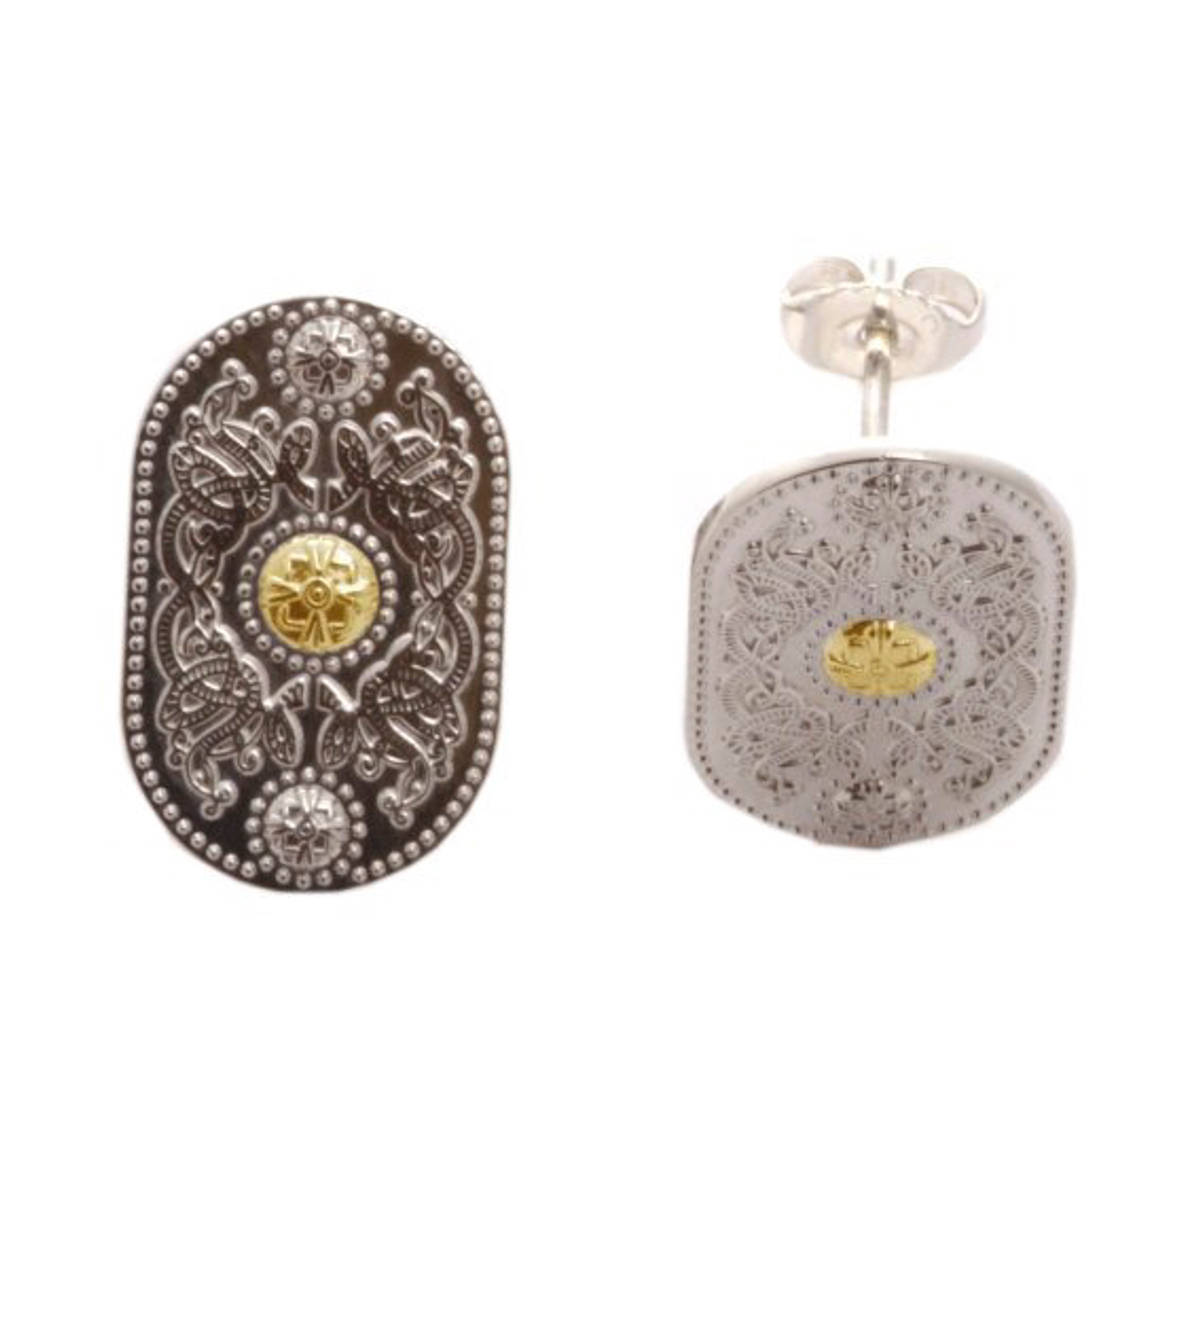 Arda Sml Silver (20mm) Stud Earrings With 14 carat Yellow Gold Boss